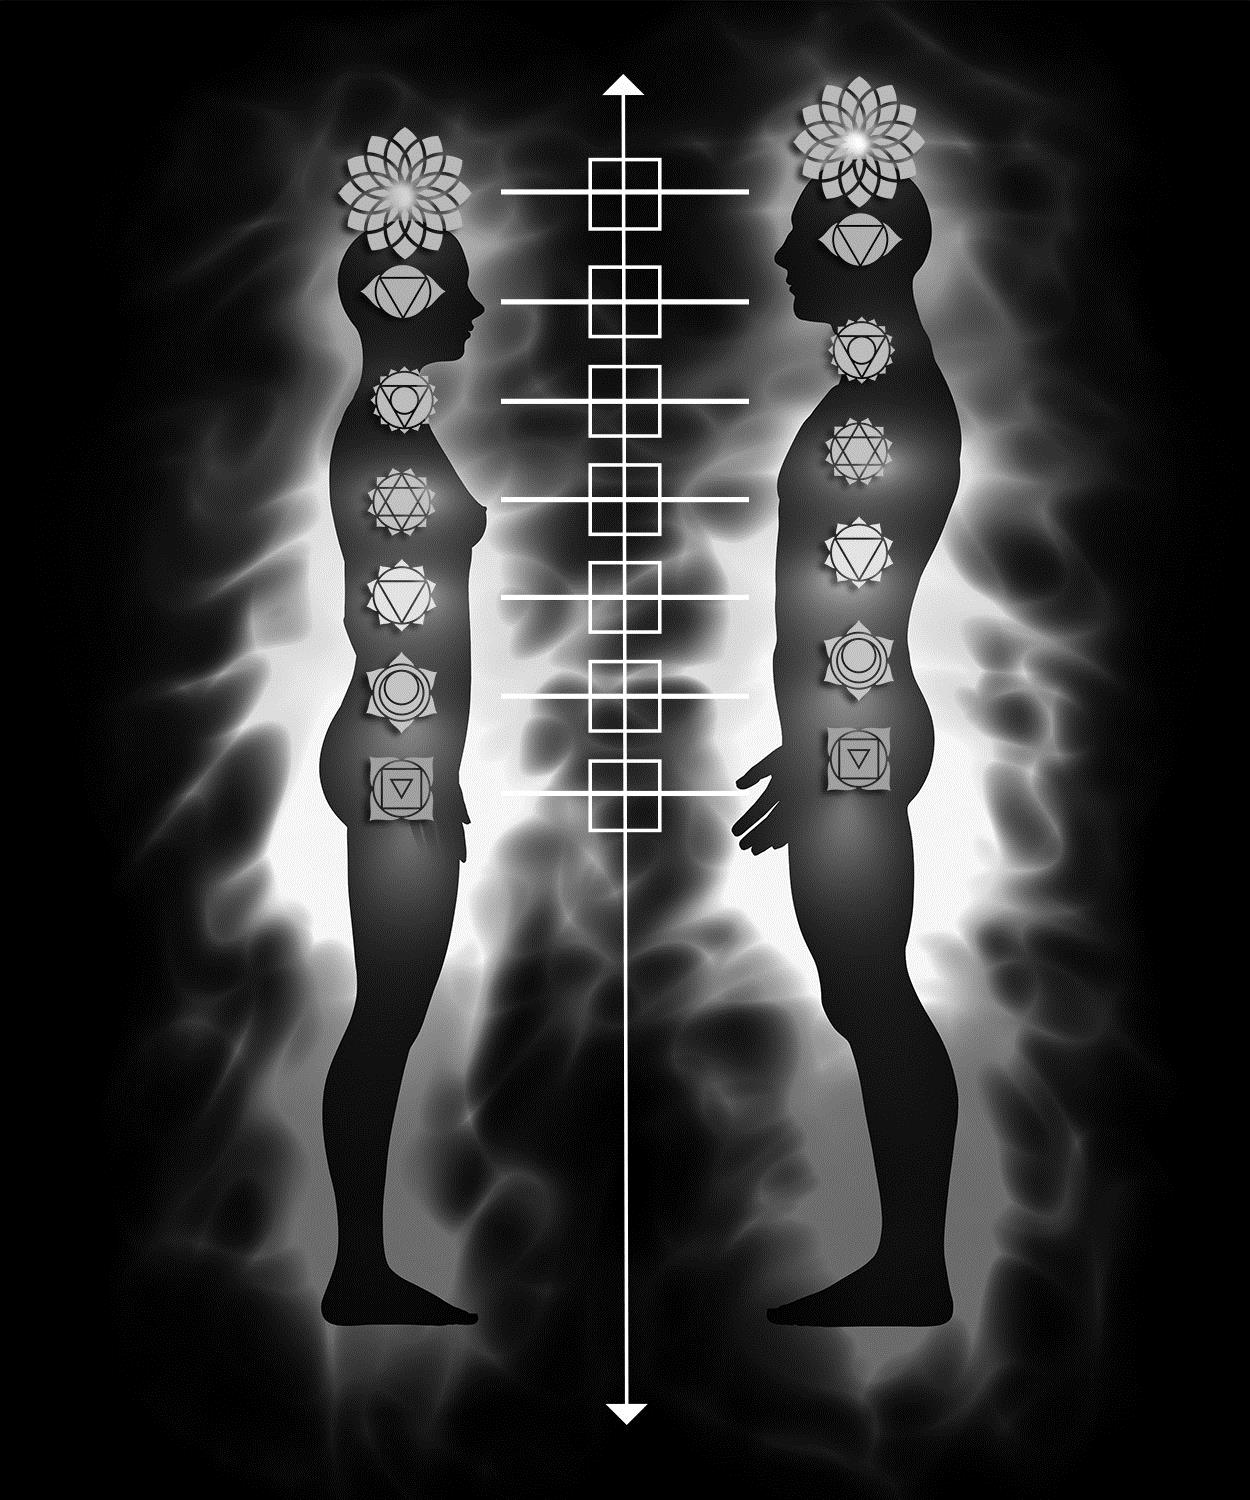 Not in Book: Couple balancing and harmonizing feminine-masculine polarities in all four quadrants at the level of all seven Chakras